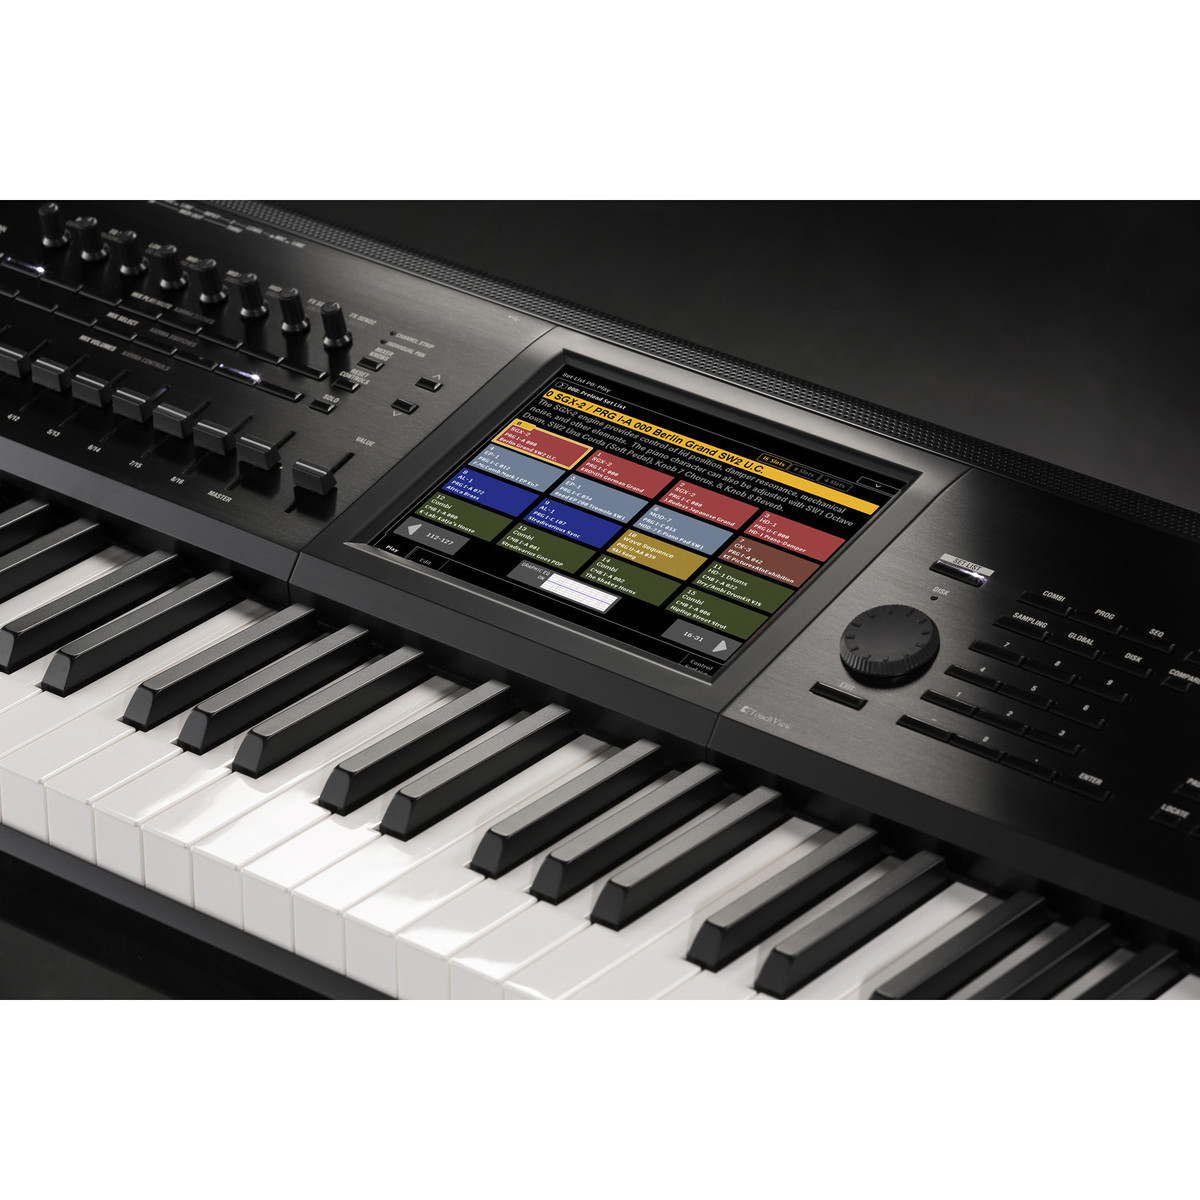 Korg Kronos 88 Music Workstation at Gear4music